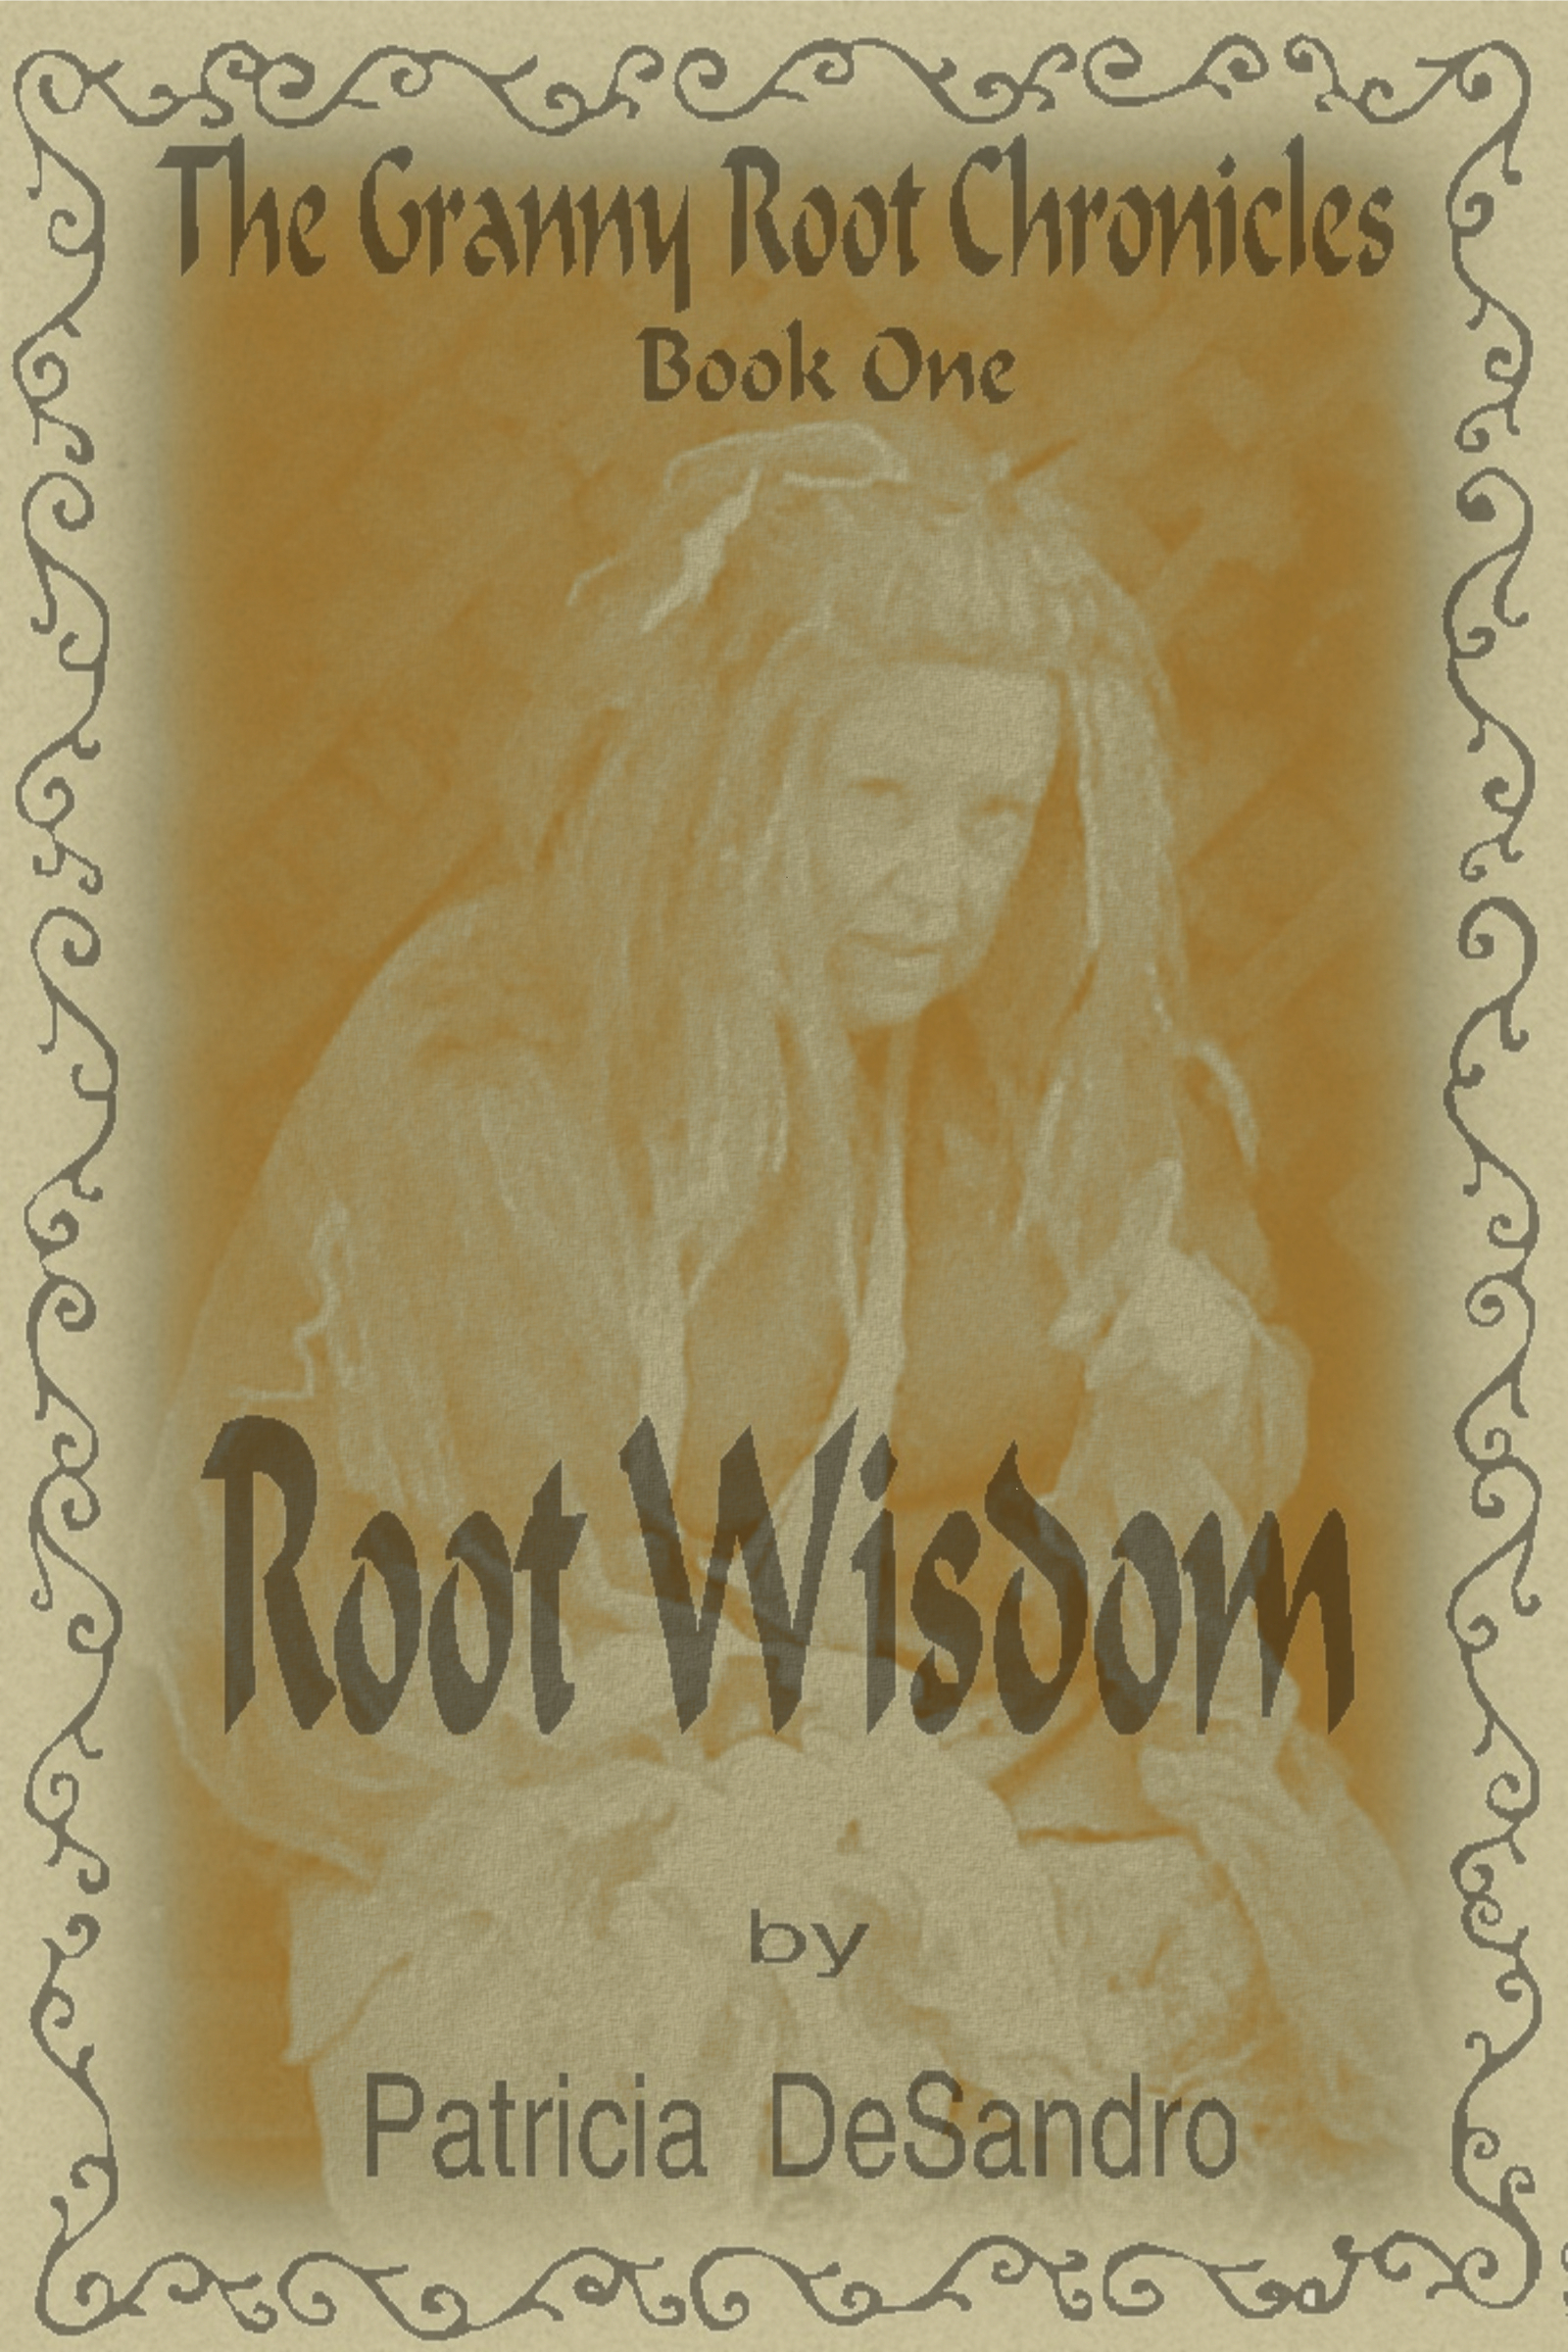 The Granny Root Chronicles Book One Root Wisdom Patricia DeSandro